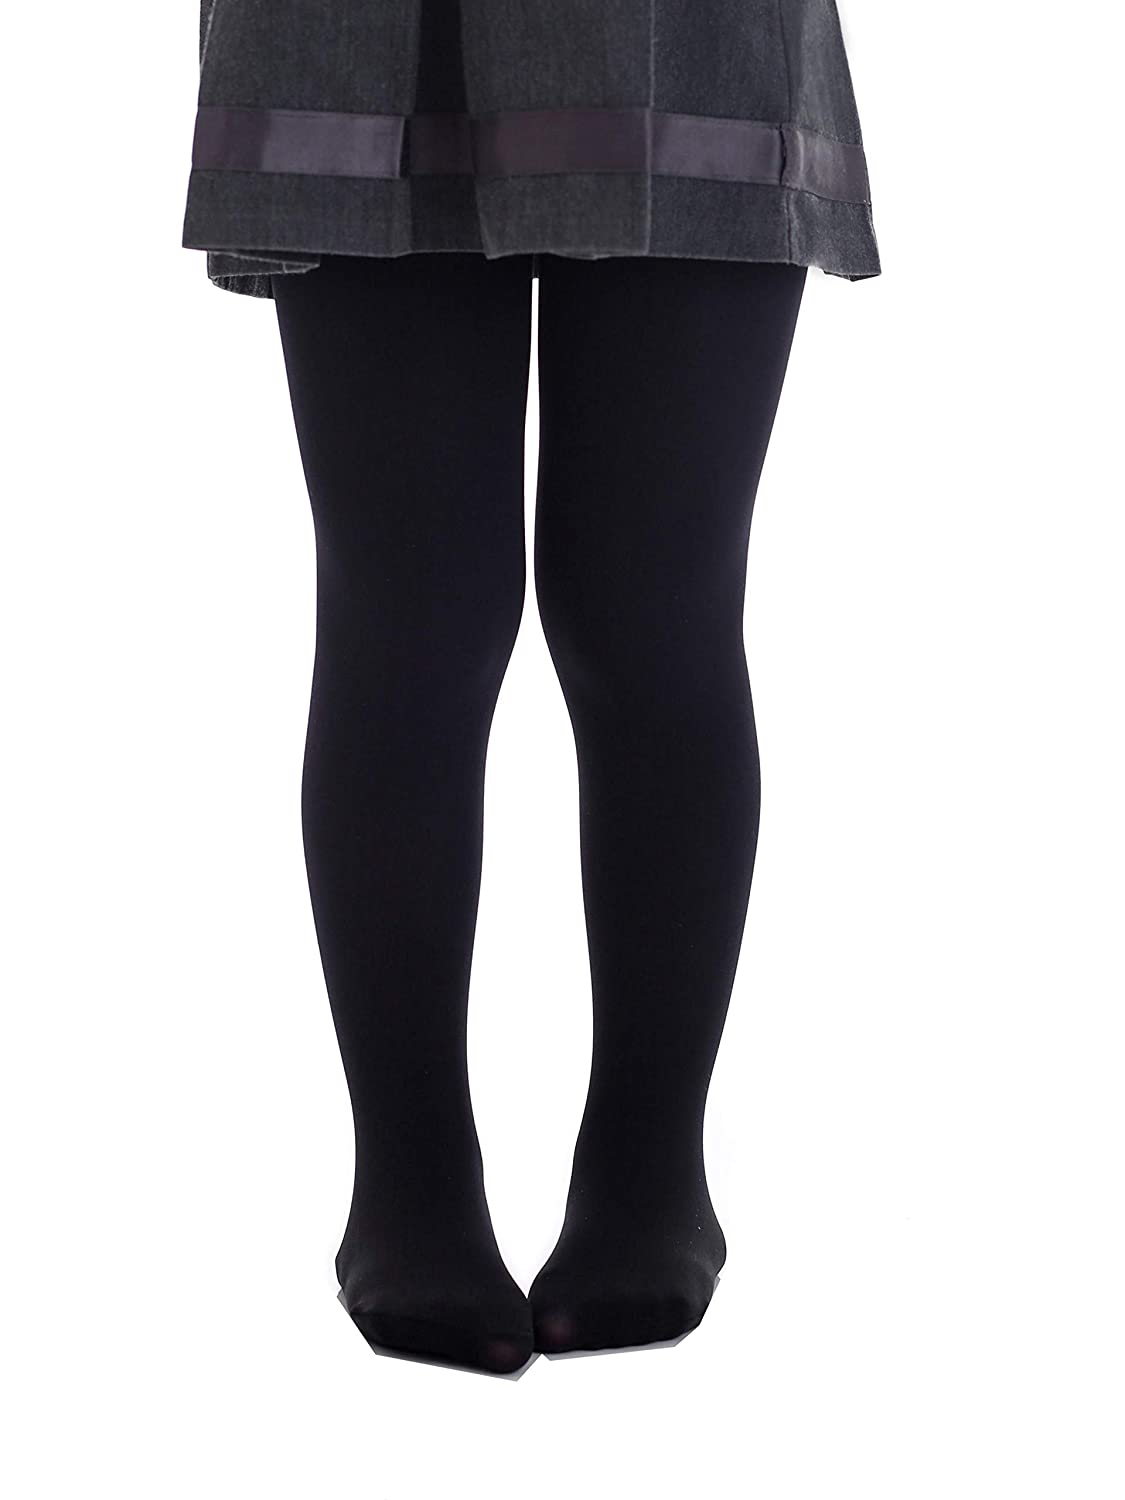 f7cb96bd30853 Top Fit Socks Girls' Microfiber Tights: Opaque Solid Seemless Footed  Leggings: Amazon.ca: Clothing & Accessories